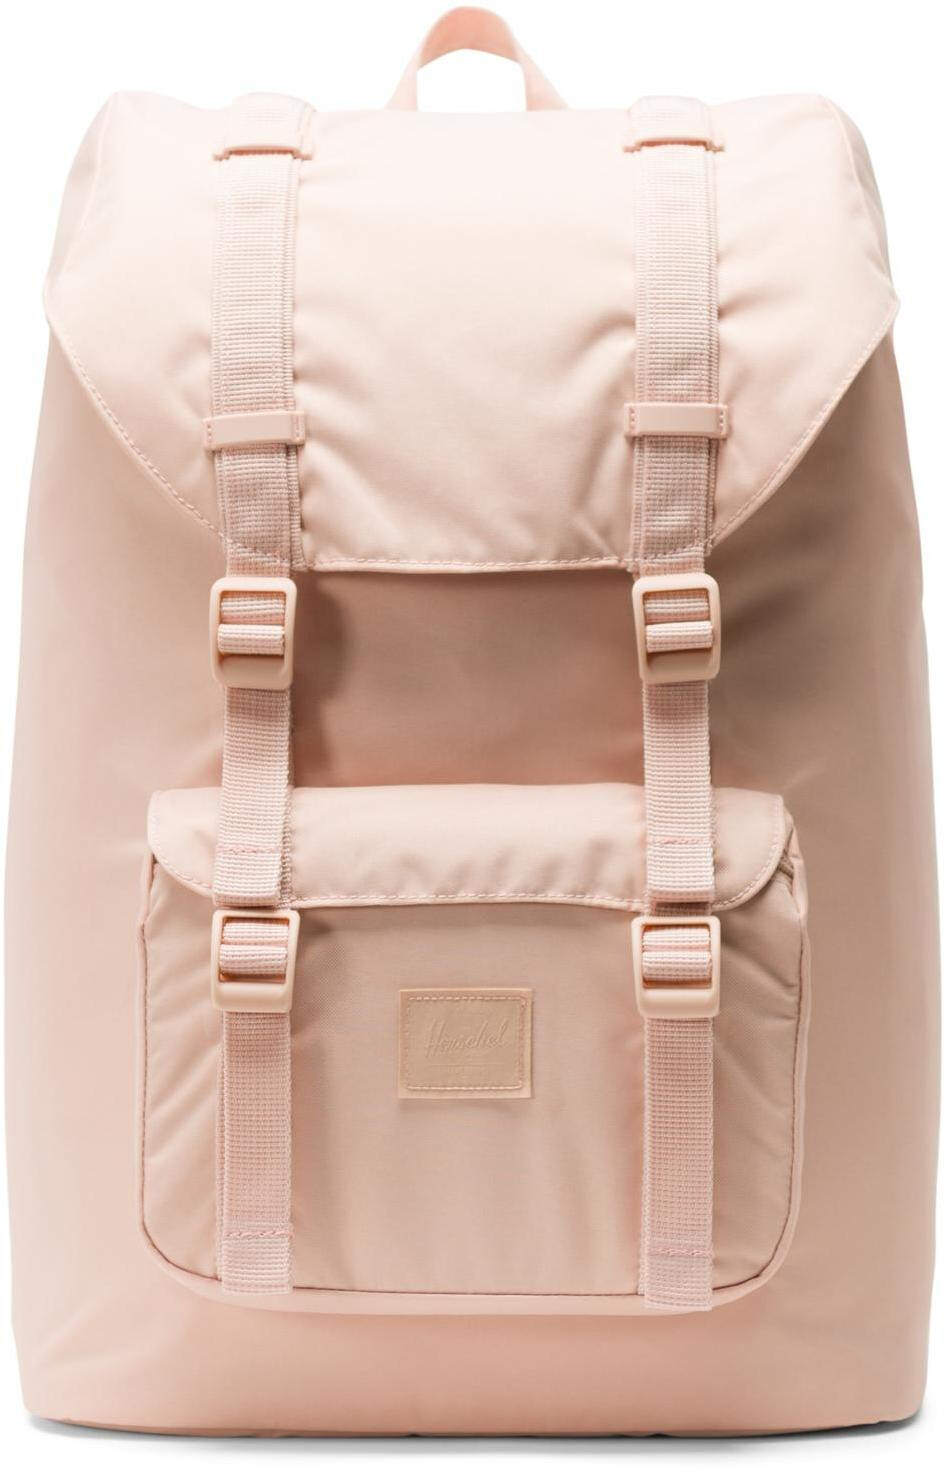 Herschel Little America Mid-Volume Light Rygsæk 17L, cameo rose (2019) | Travel bags